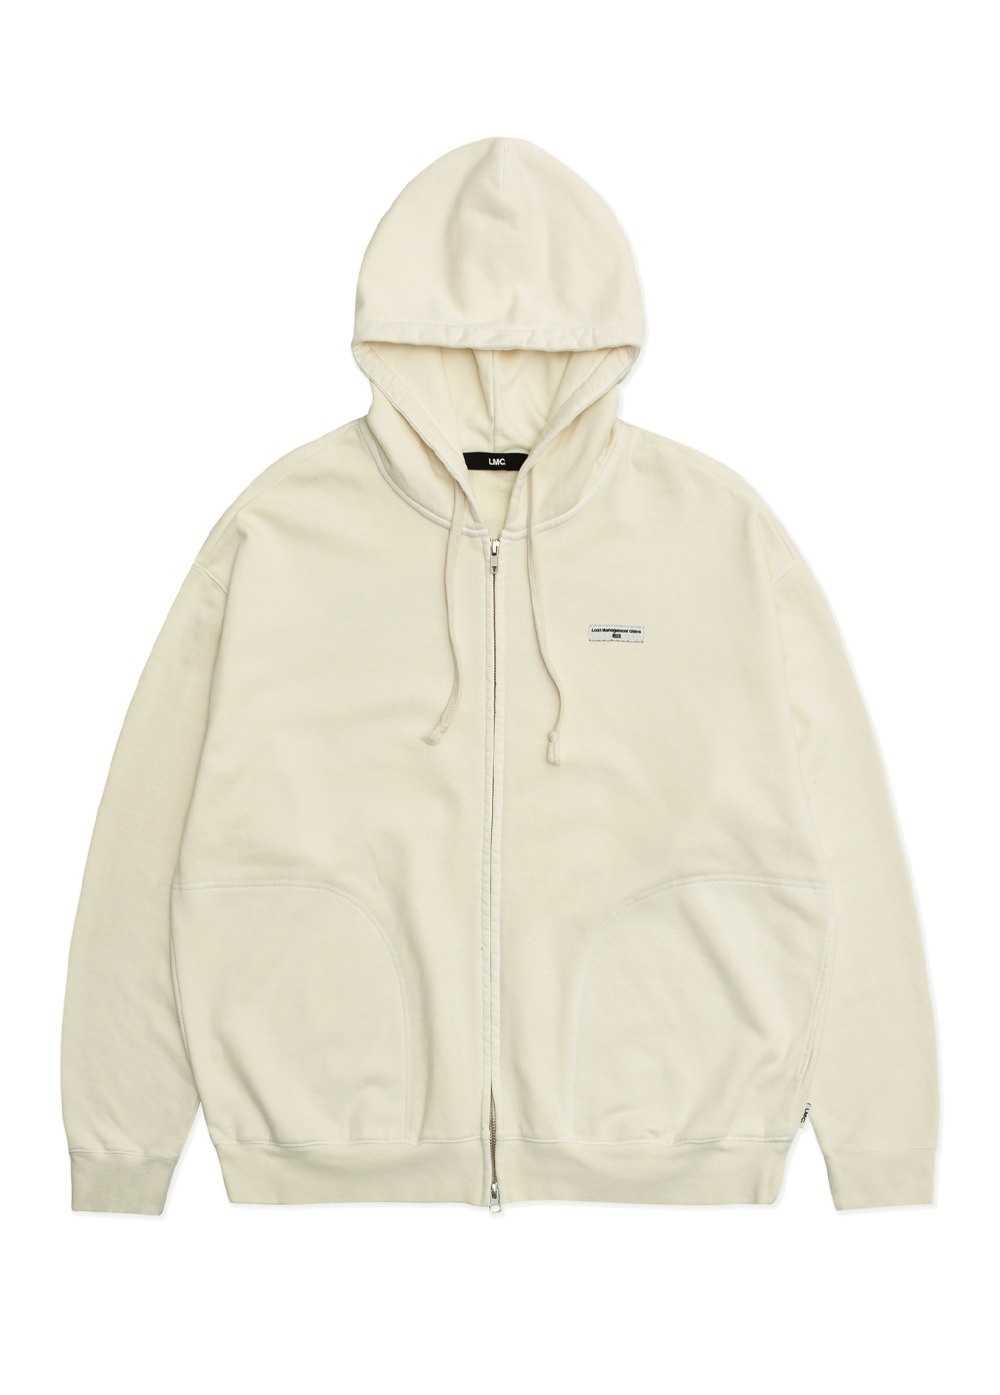 LMC OVERDYED ARCH ZIP-UP HOODIE cream